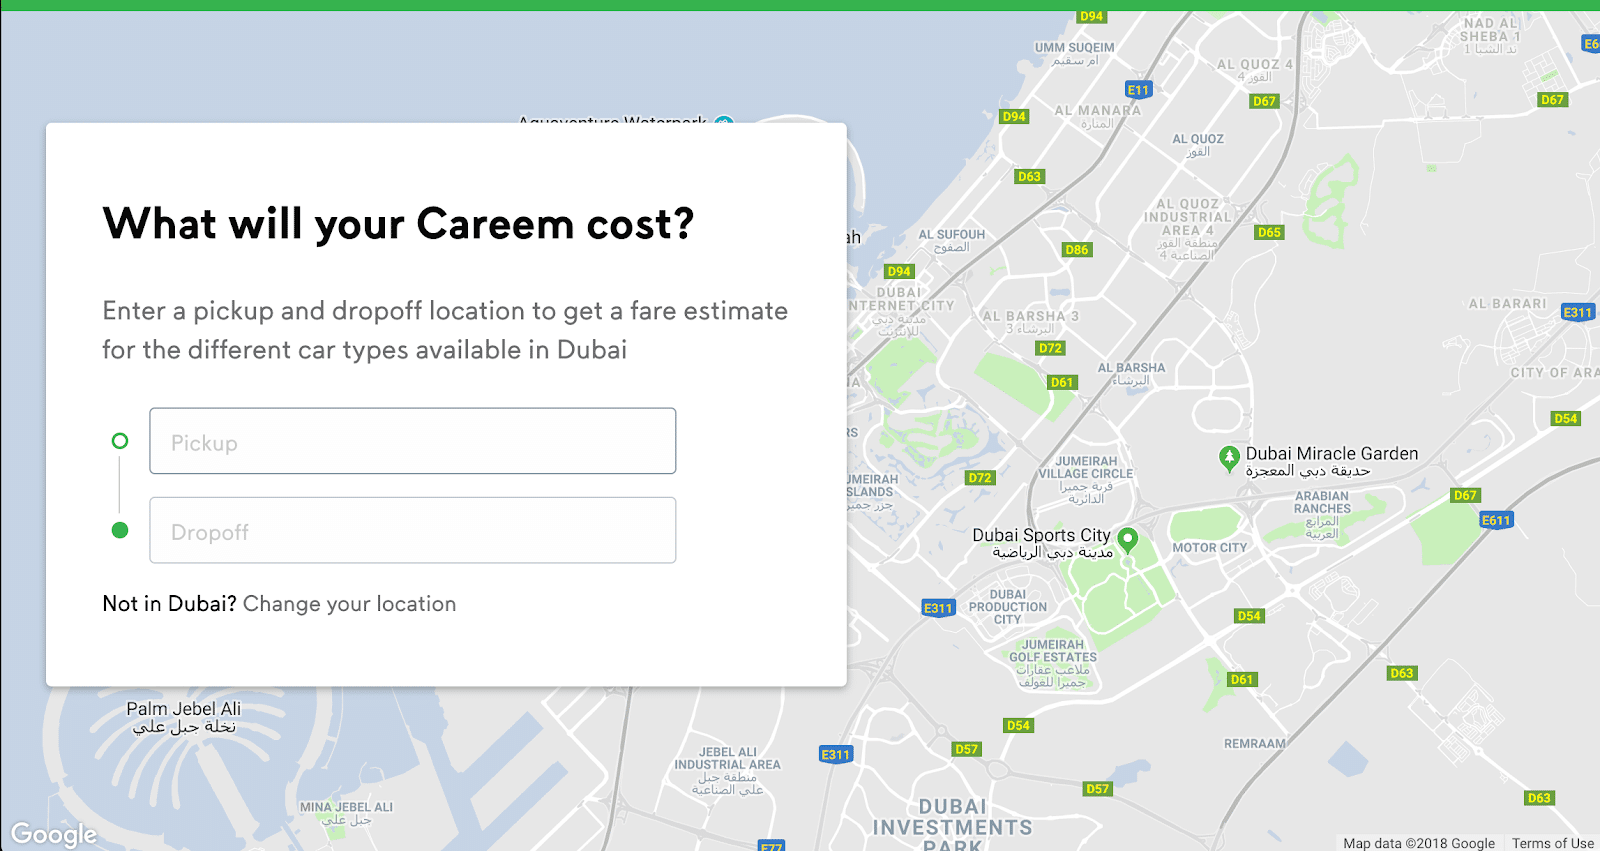 The Definitive Guide to Careem: All Your Questions Answered